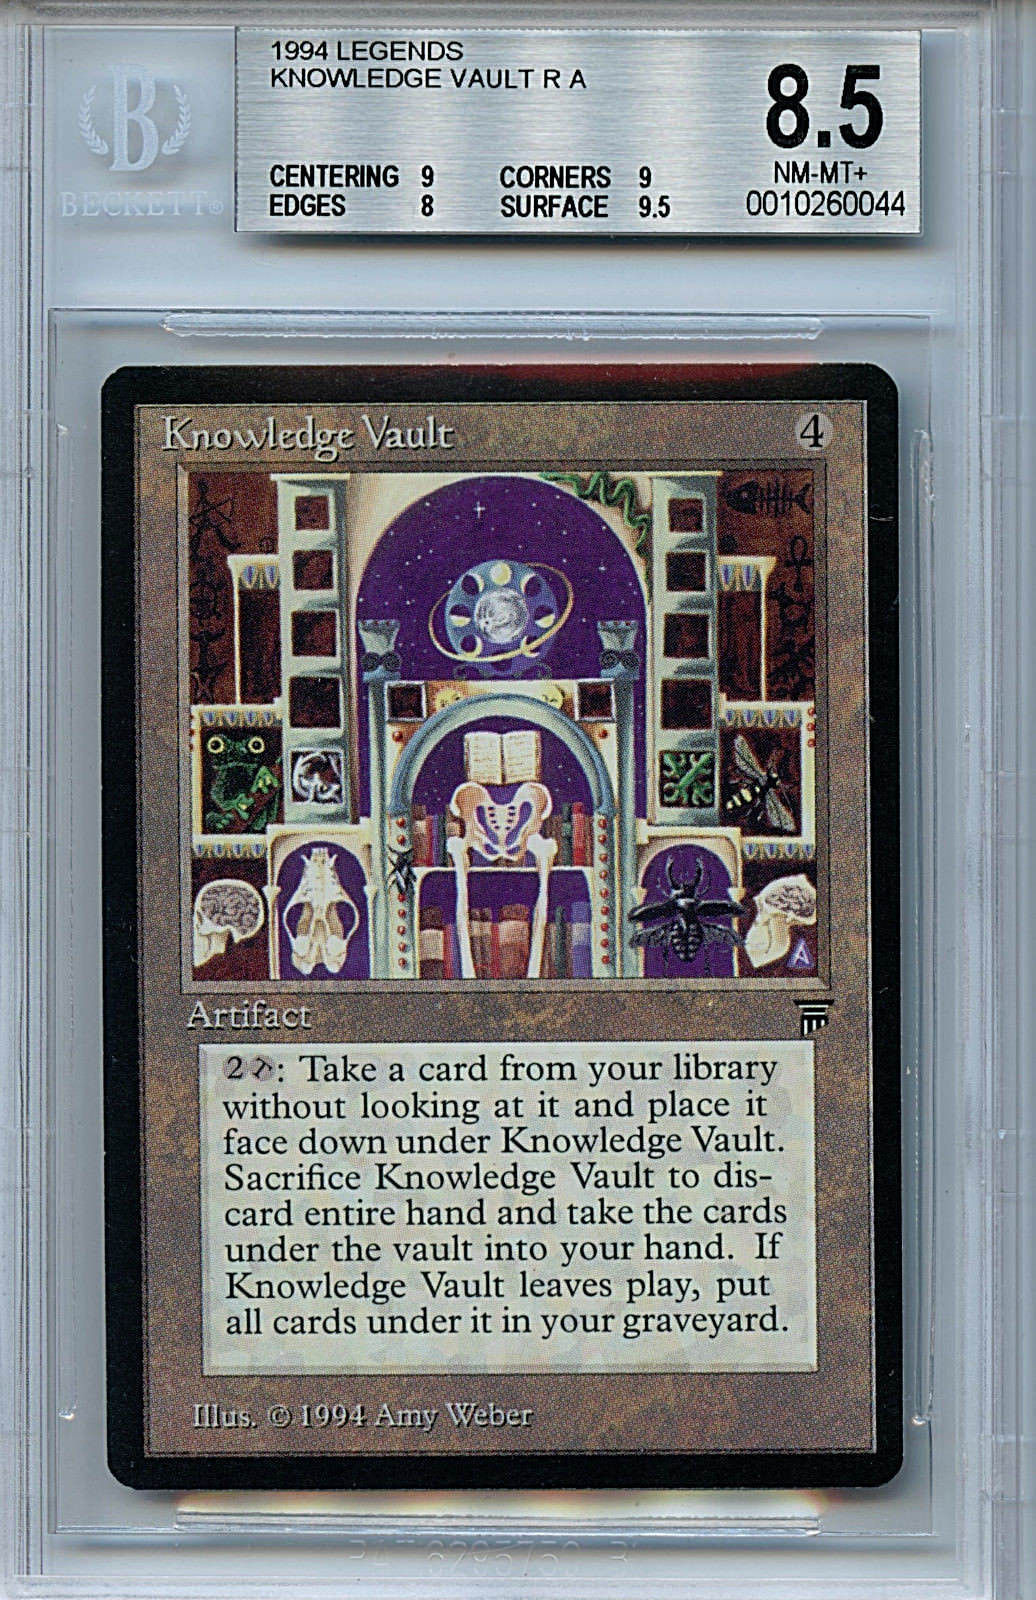 MTG Legends Knowledge Vault BGS 8.5 NM-MT+ magic card 0044